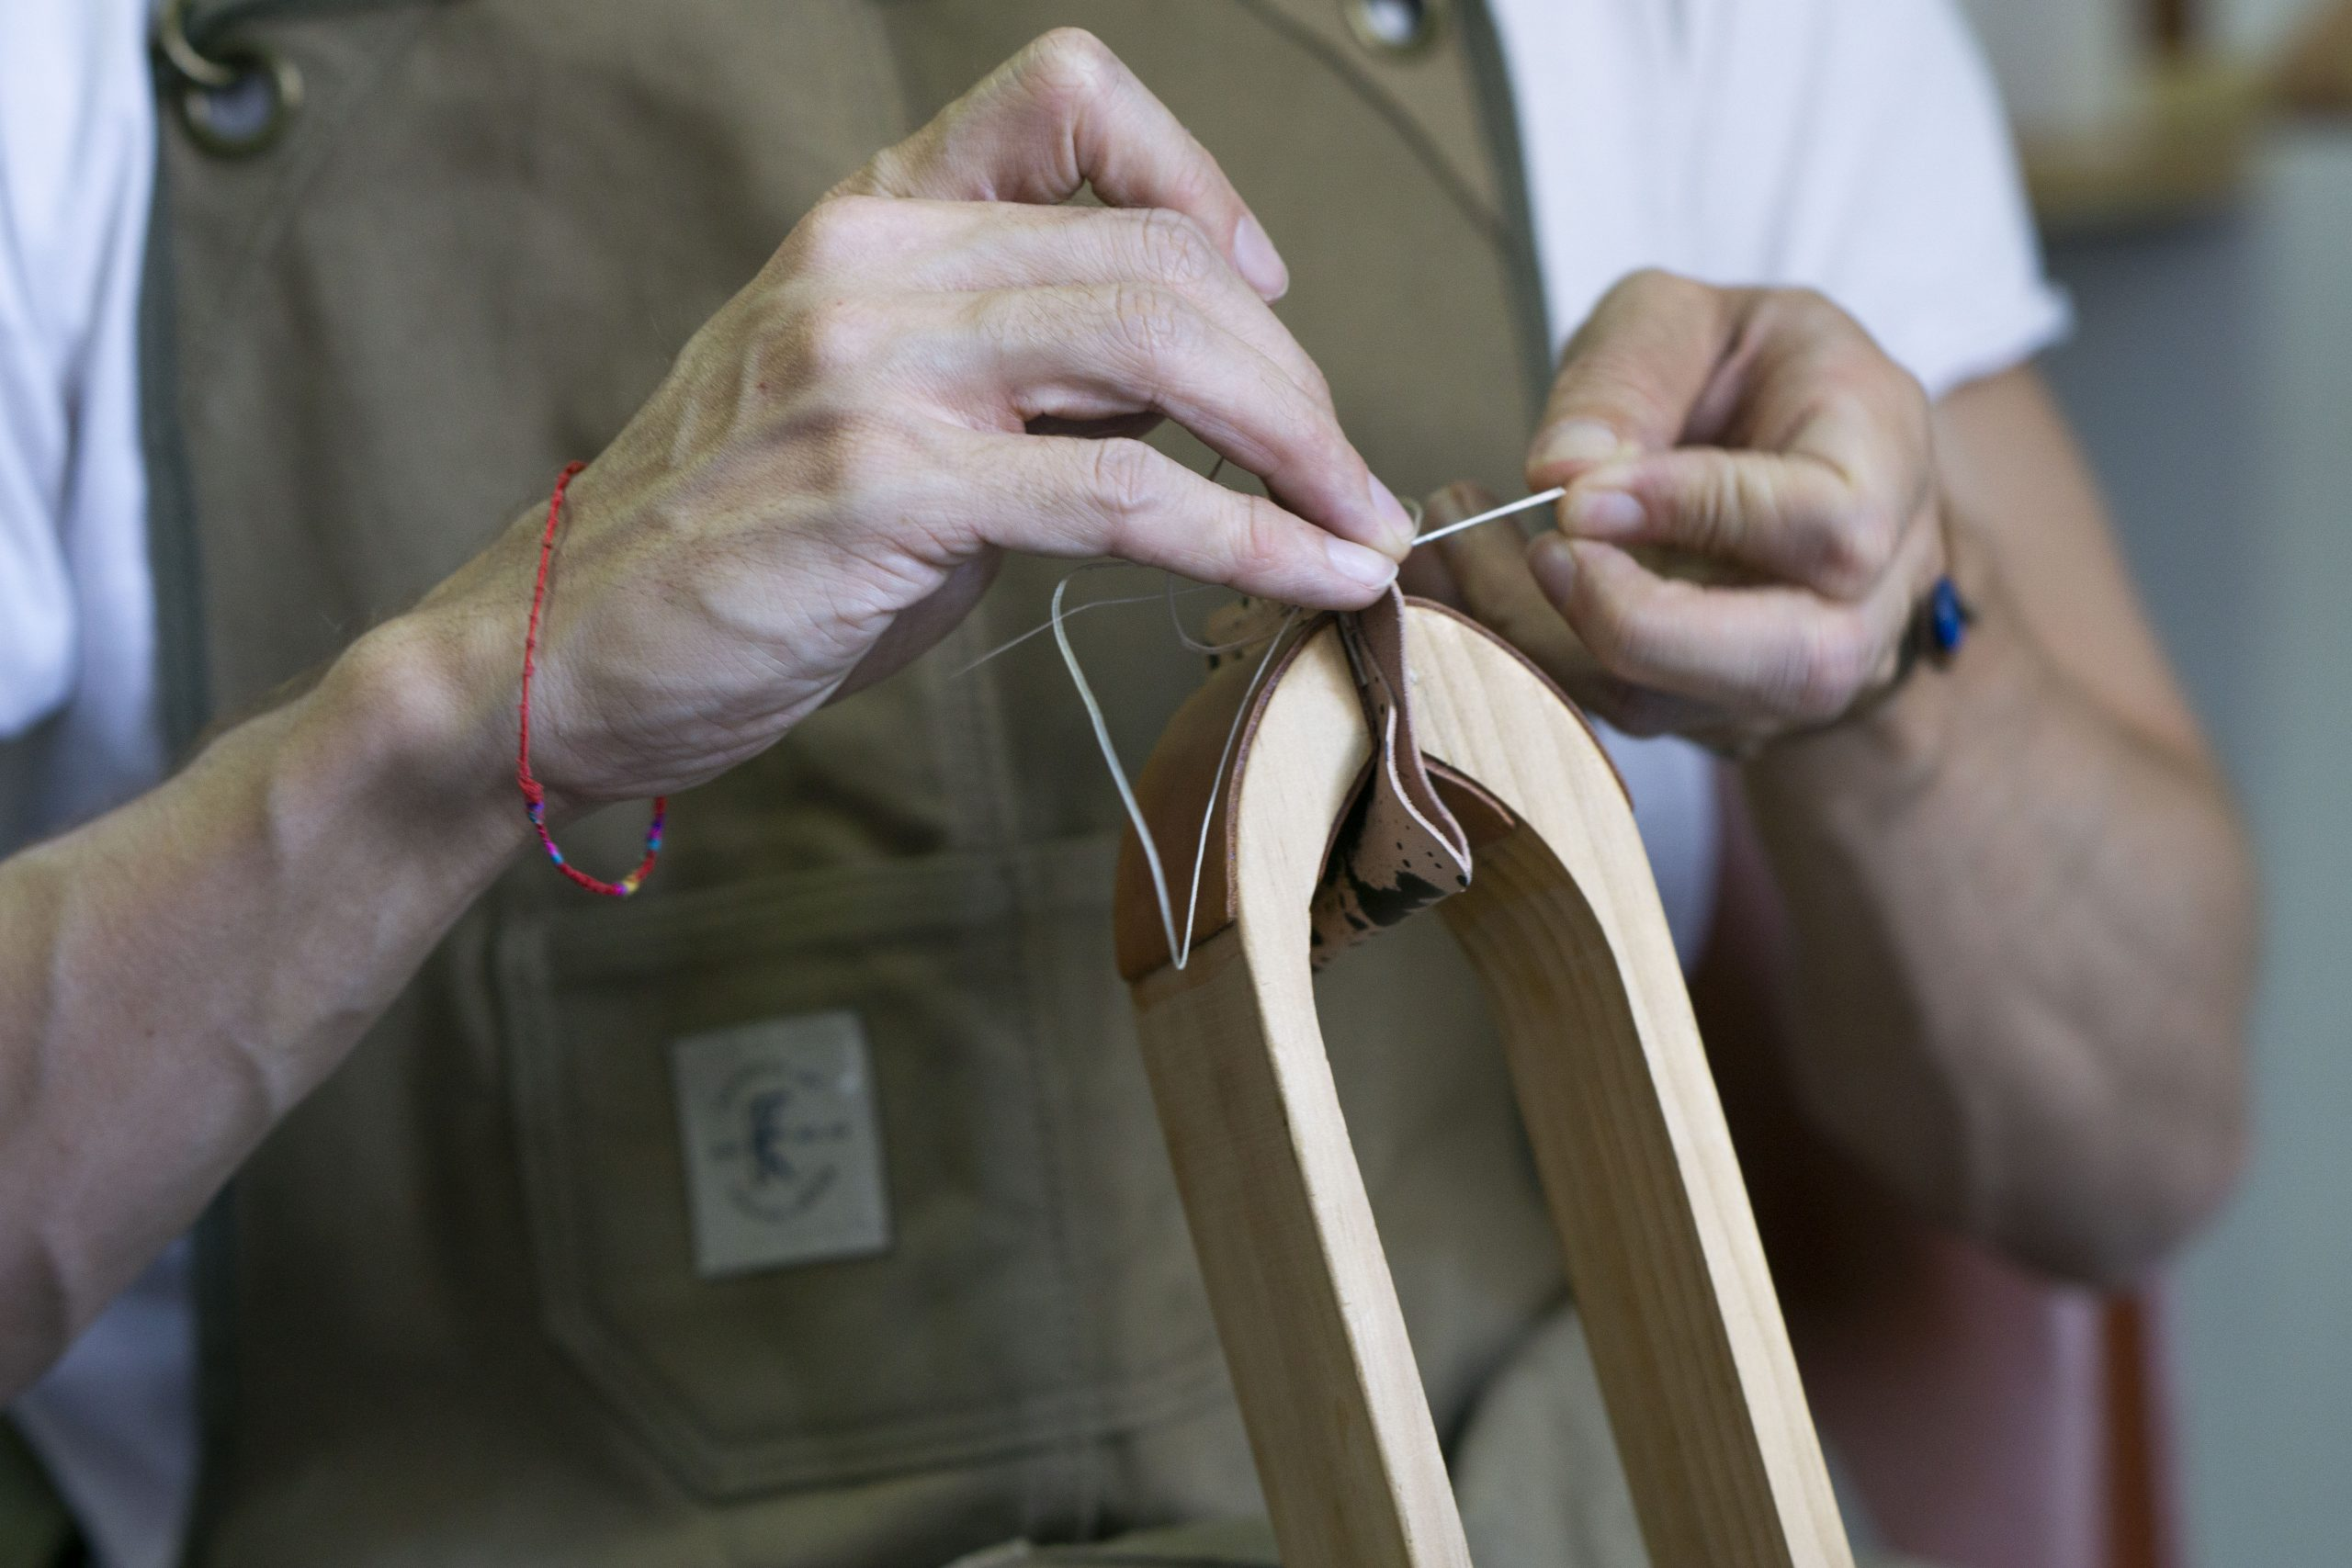 Lerif Designs Ayman's hands stitching a leather item in a stitching horse